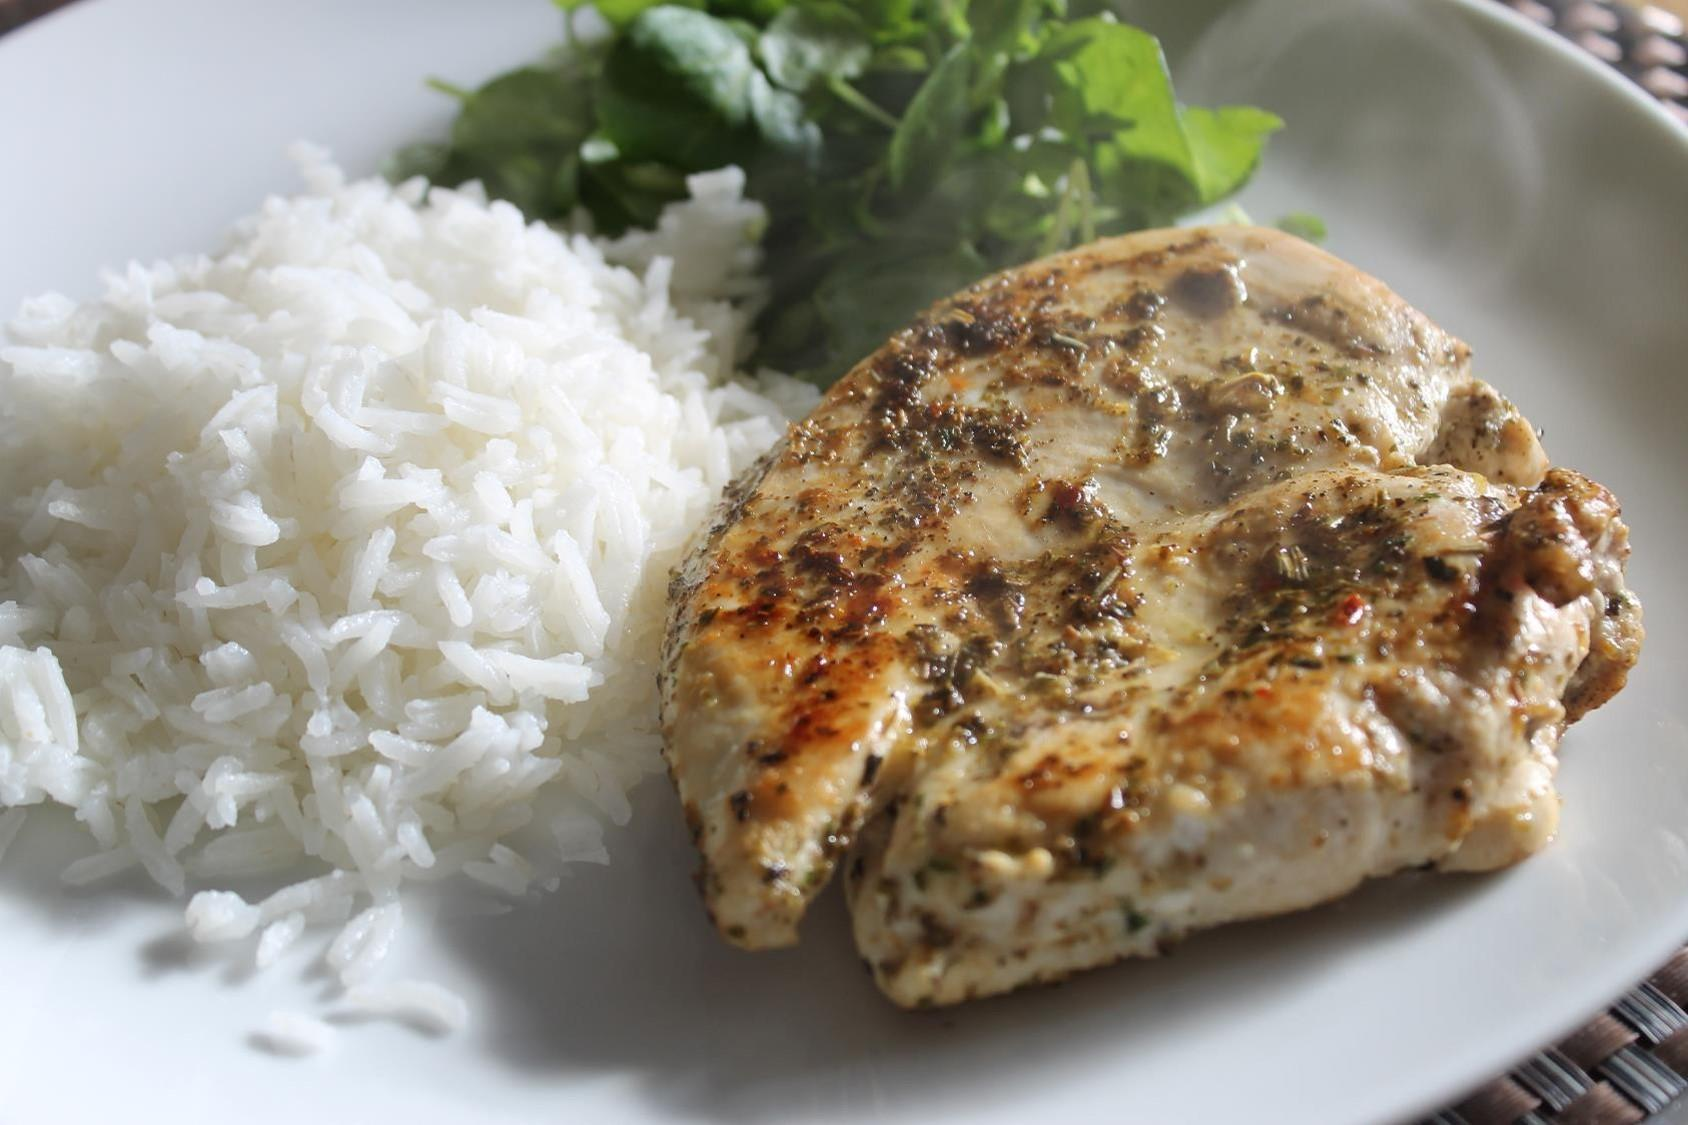 Tender & Juicy Chicken Breast Fillets